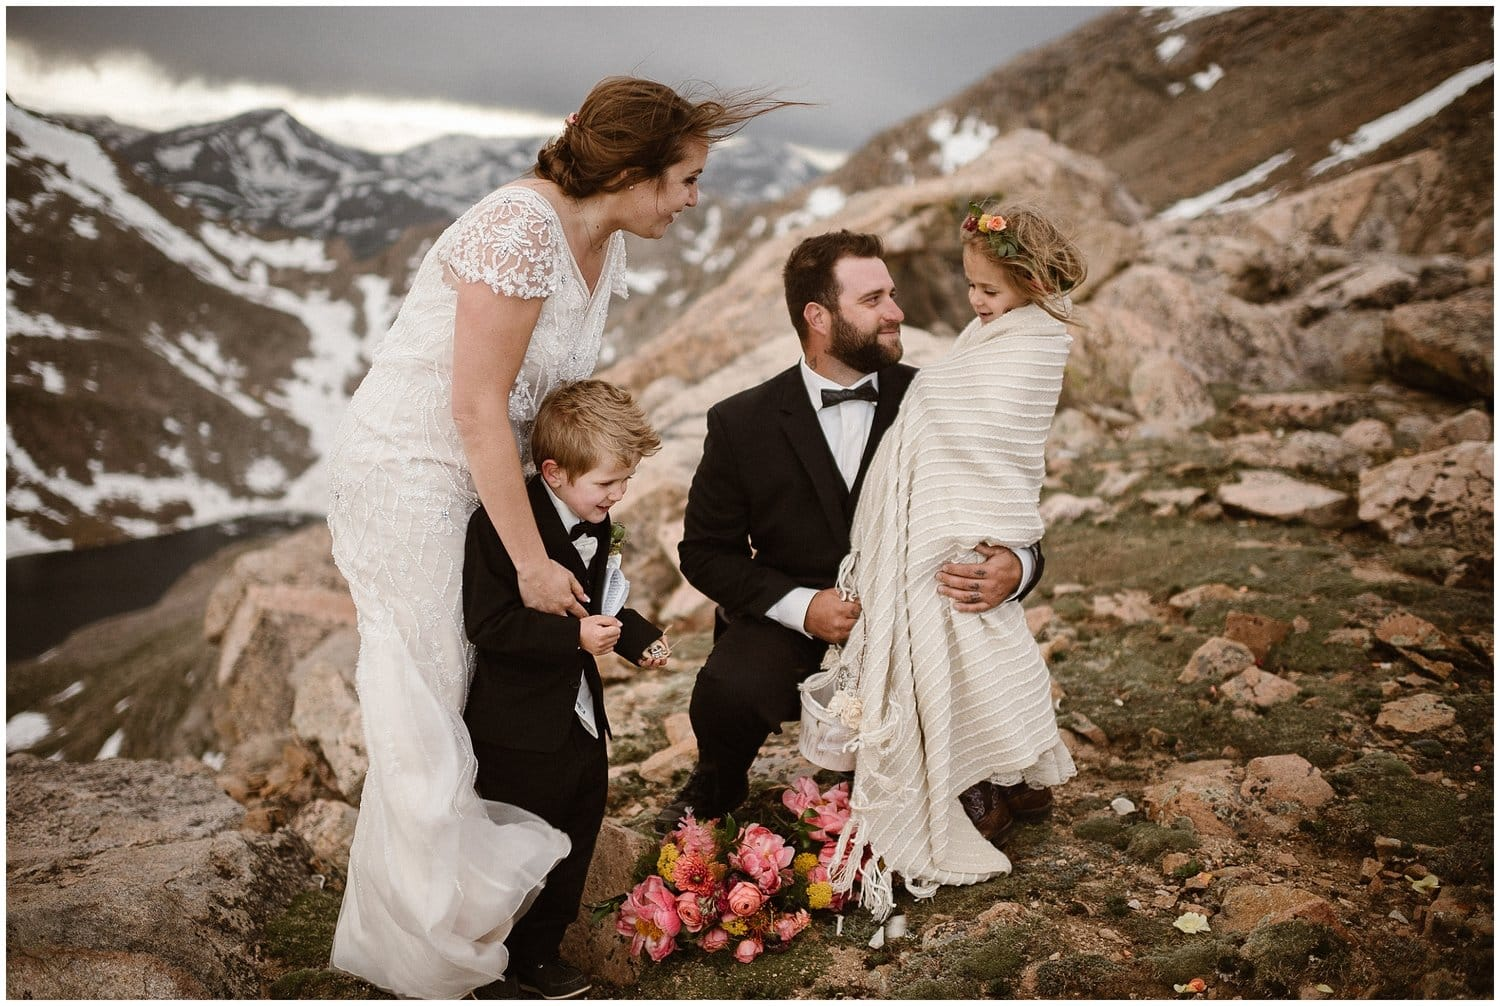 A couple embrace and smile at their children in the mountains on their wedding day.